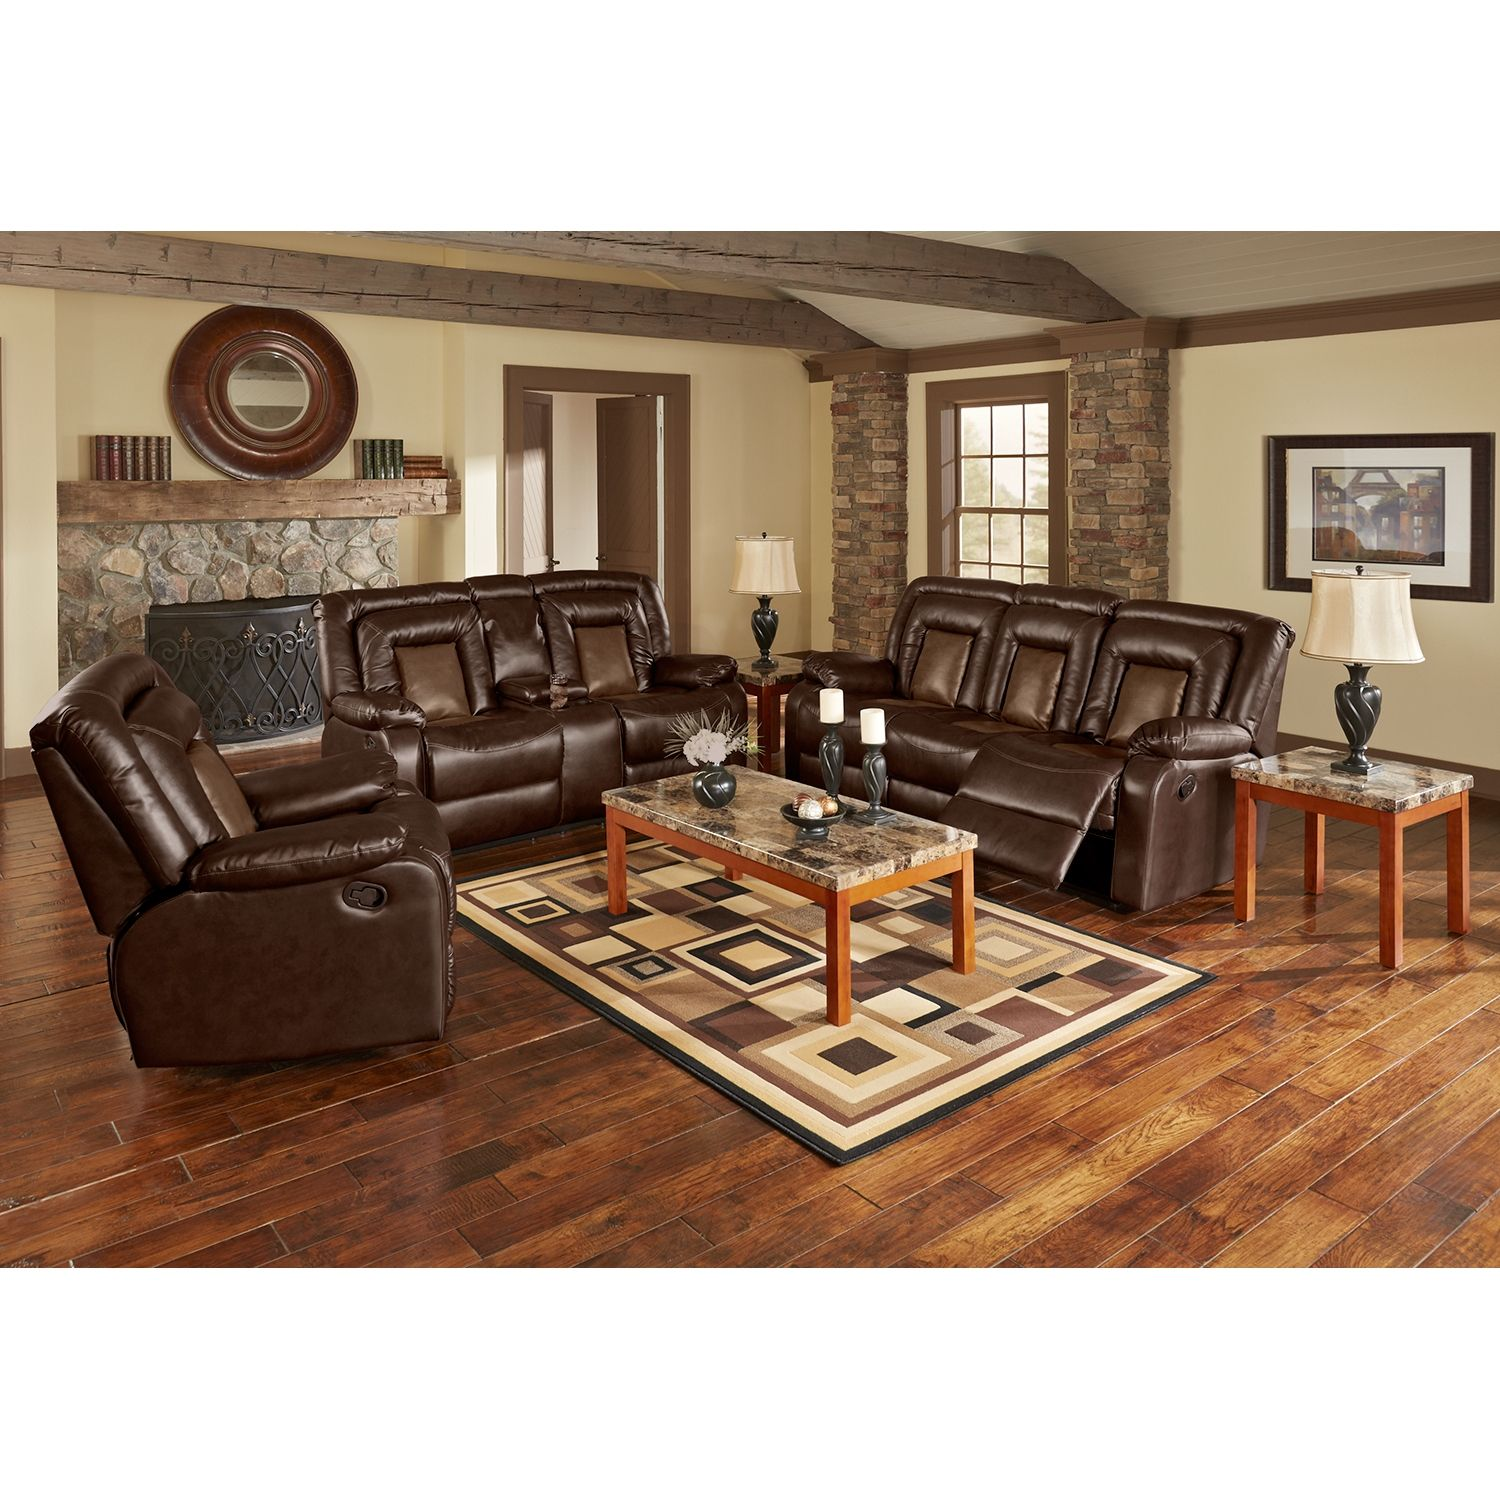 living room furniture - cobra 2 pc. reclining living room | family